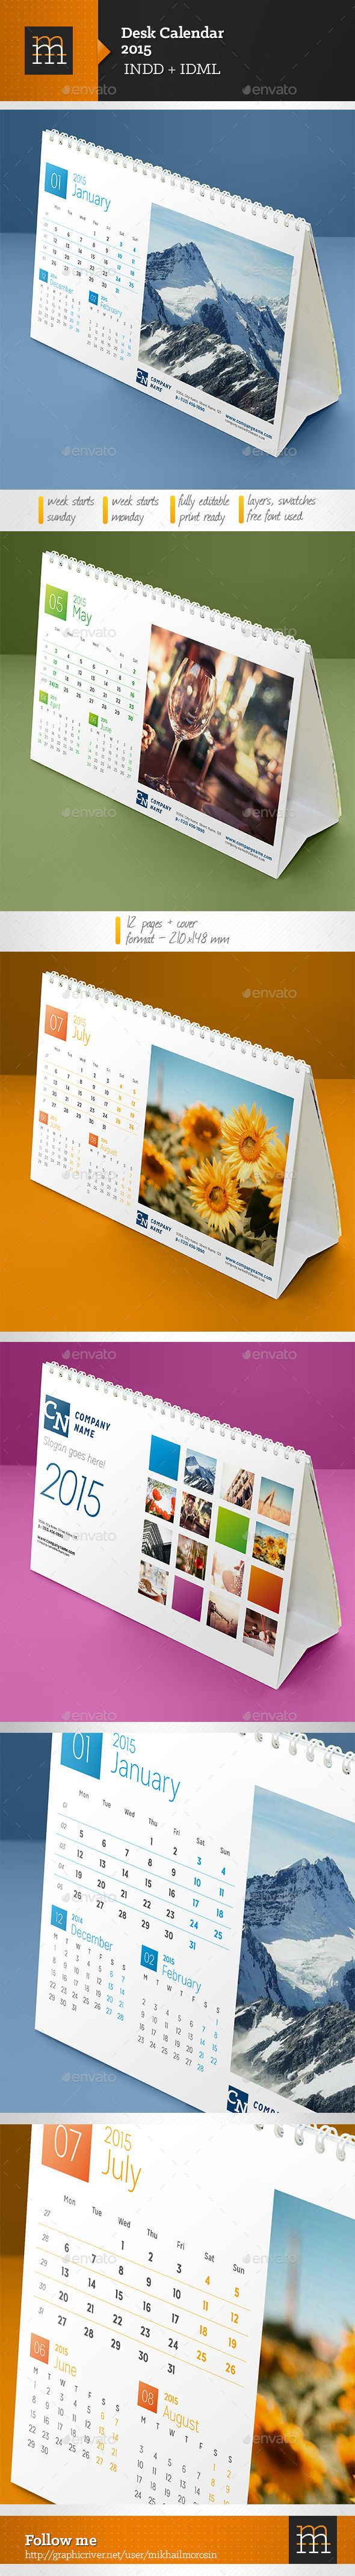 Desk Calendar 2015 Template | Buy and Download: http://graphicriver.net/item/desk-calendar-2015/8861786?ref=ksioks